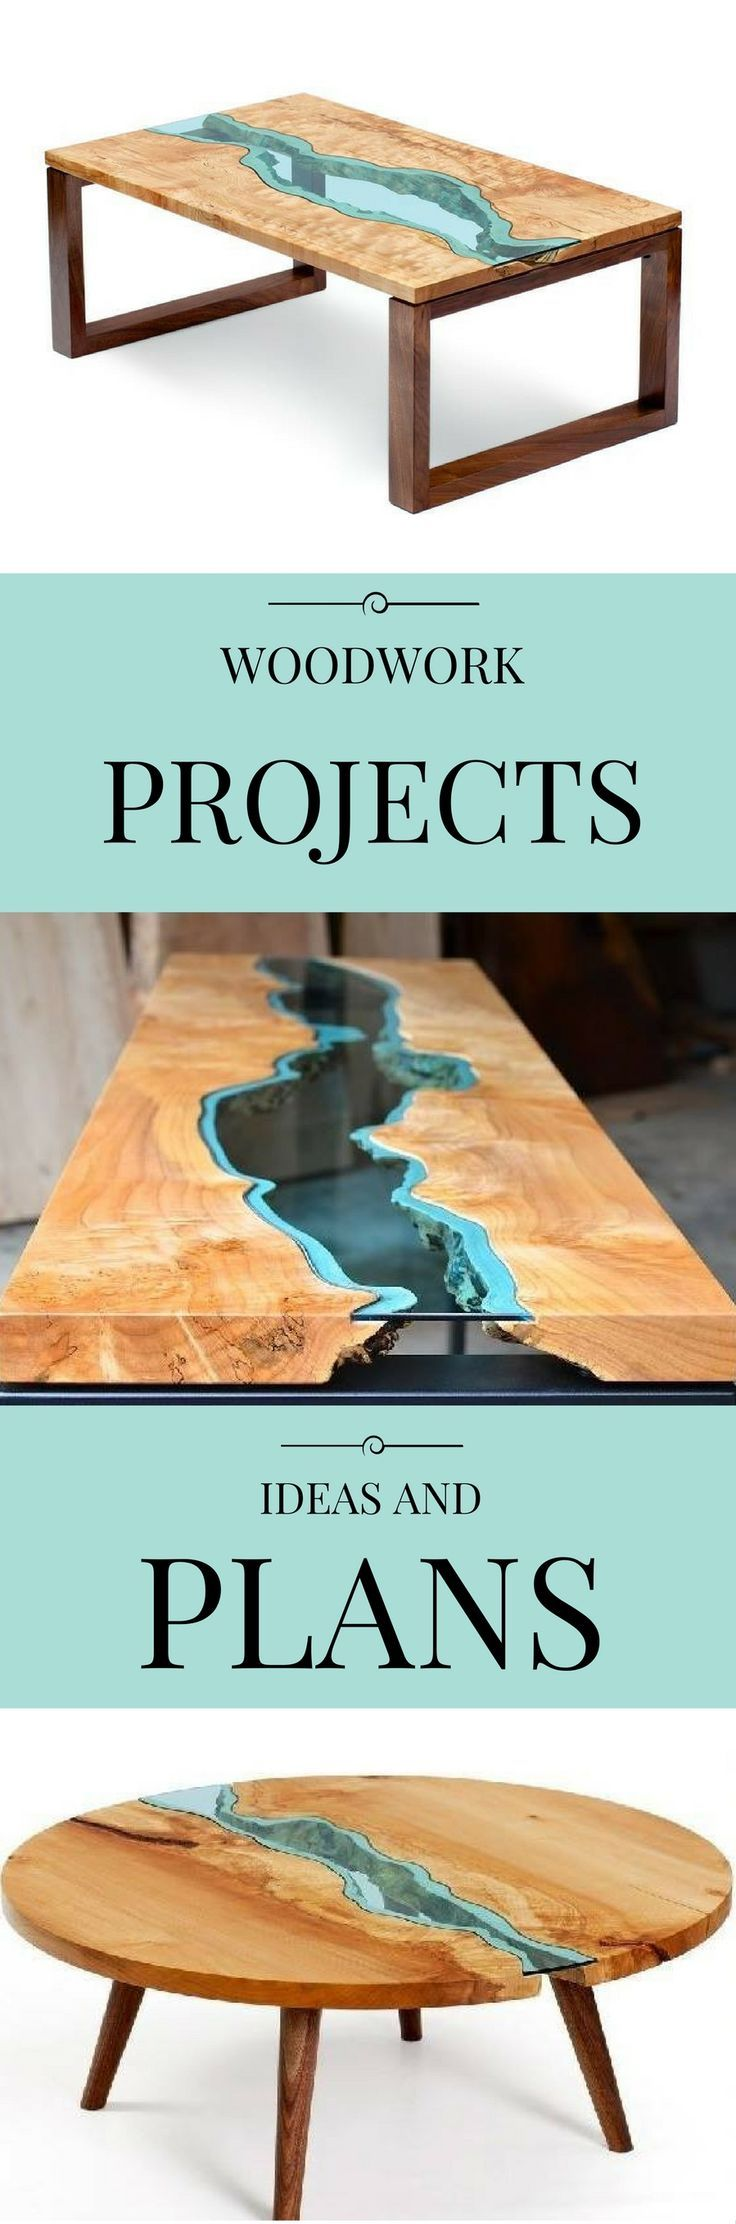 Woodwork Projects Plans Ideas Inspiration For Your Next DIY